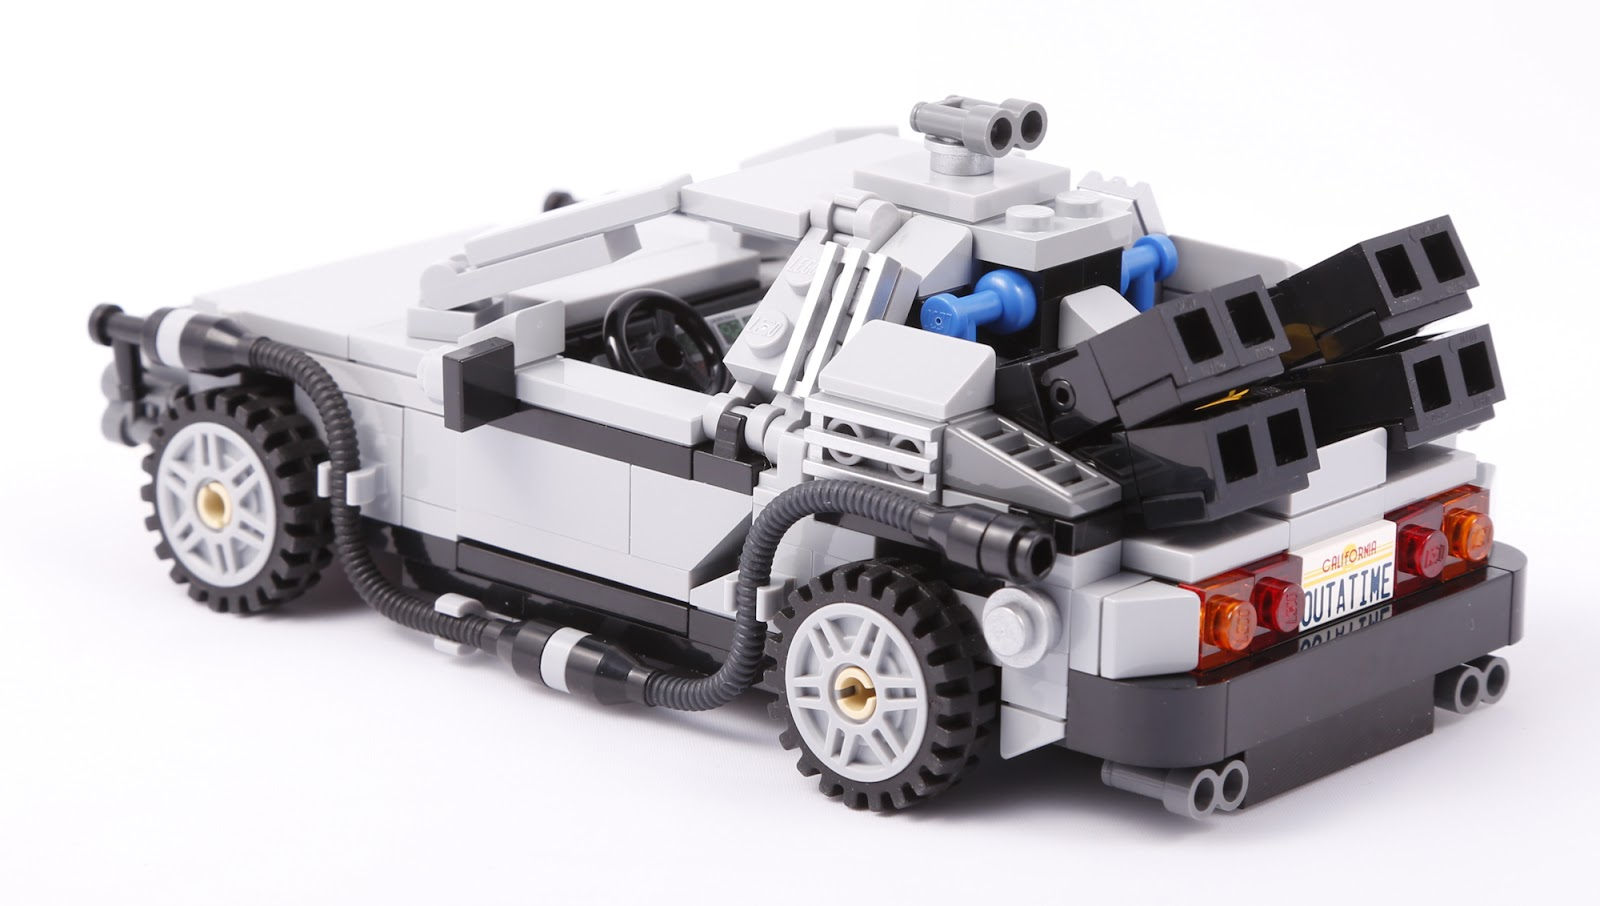 The Brickverse Review 21103 Back To The Future